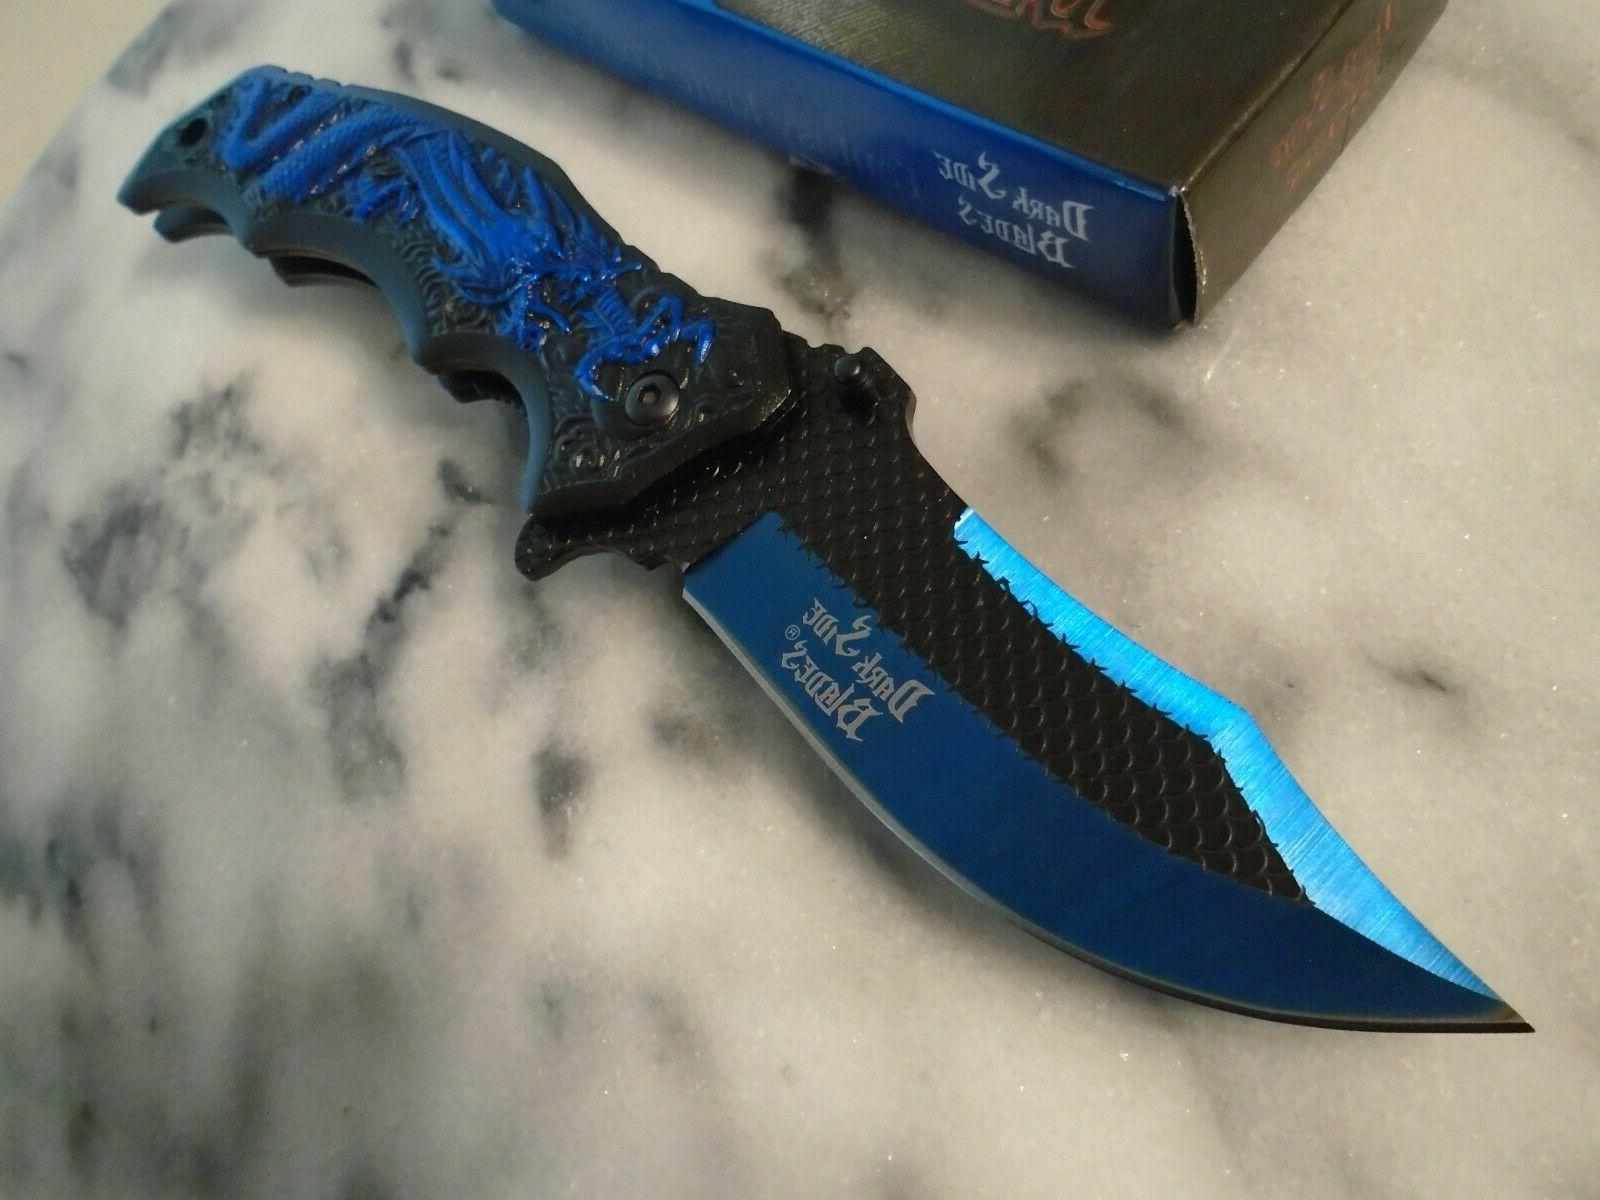 Dark Open Blue Dragon Pocket Knife A058BL Open